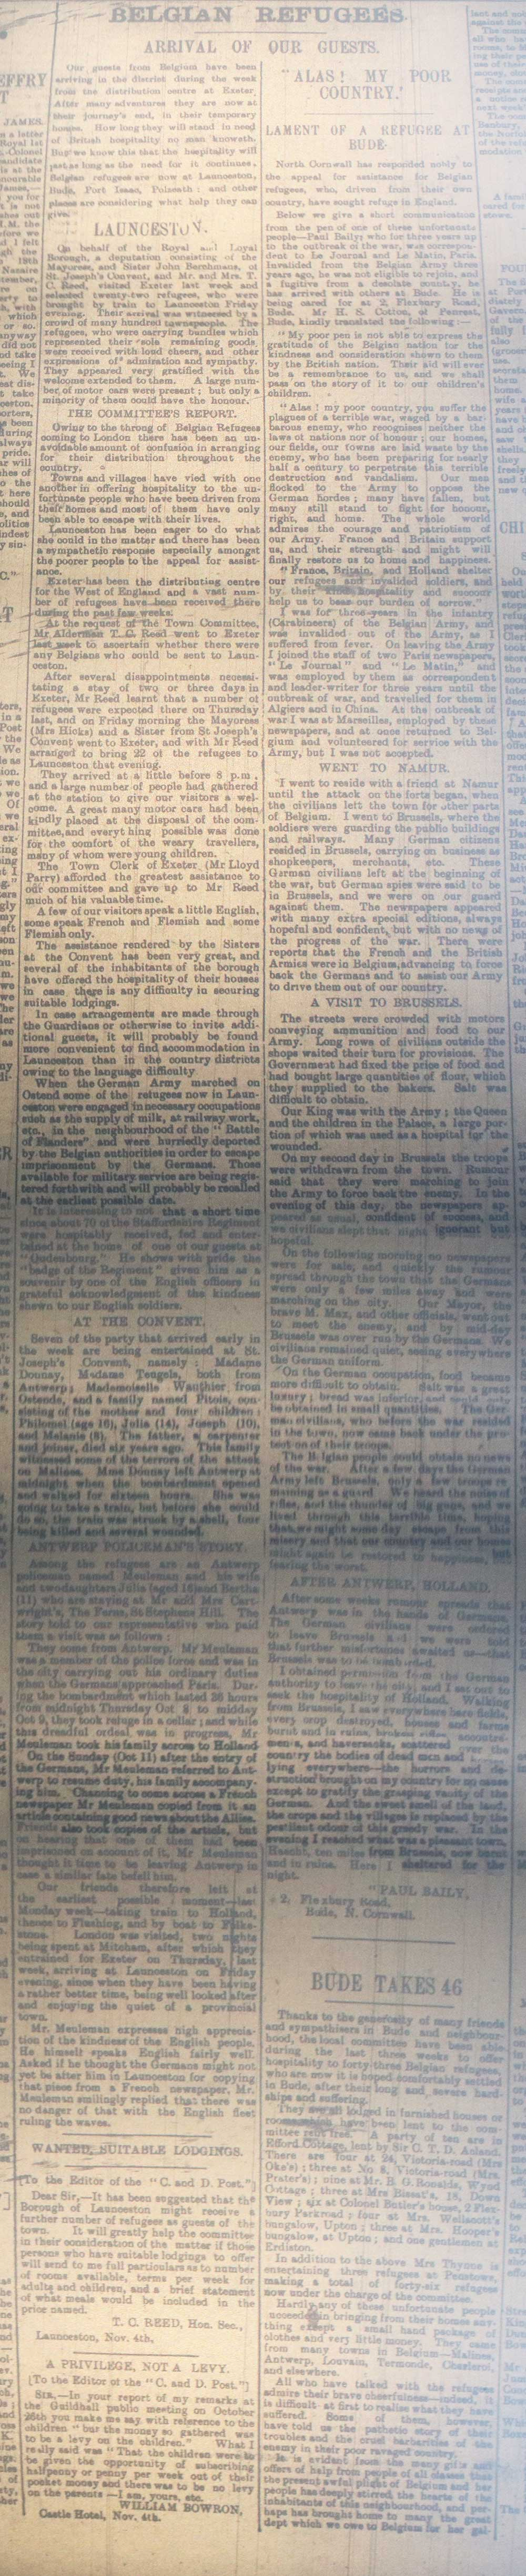 Belgium Refugee article from November 4th 1914